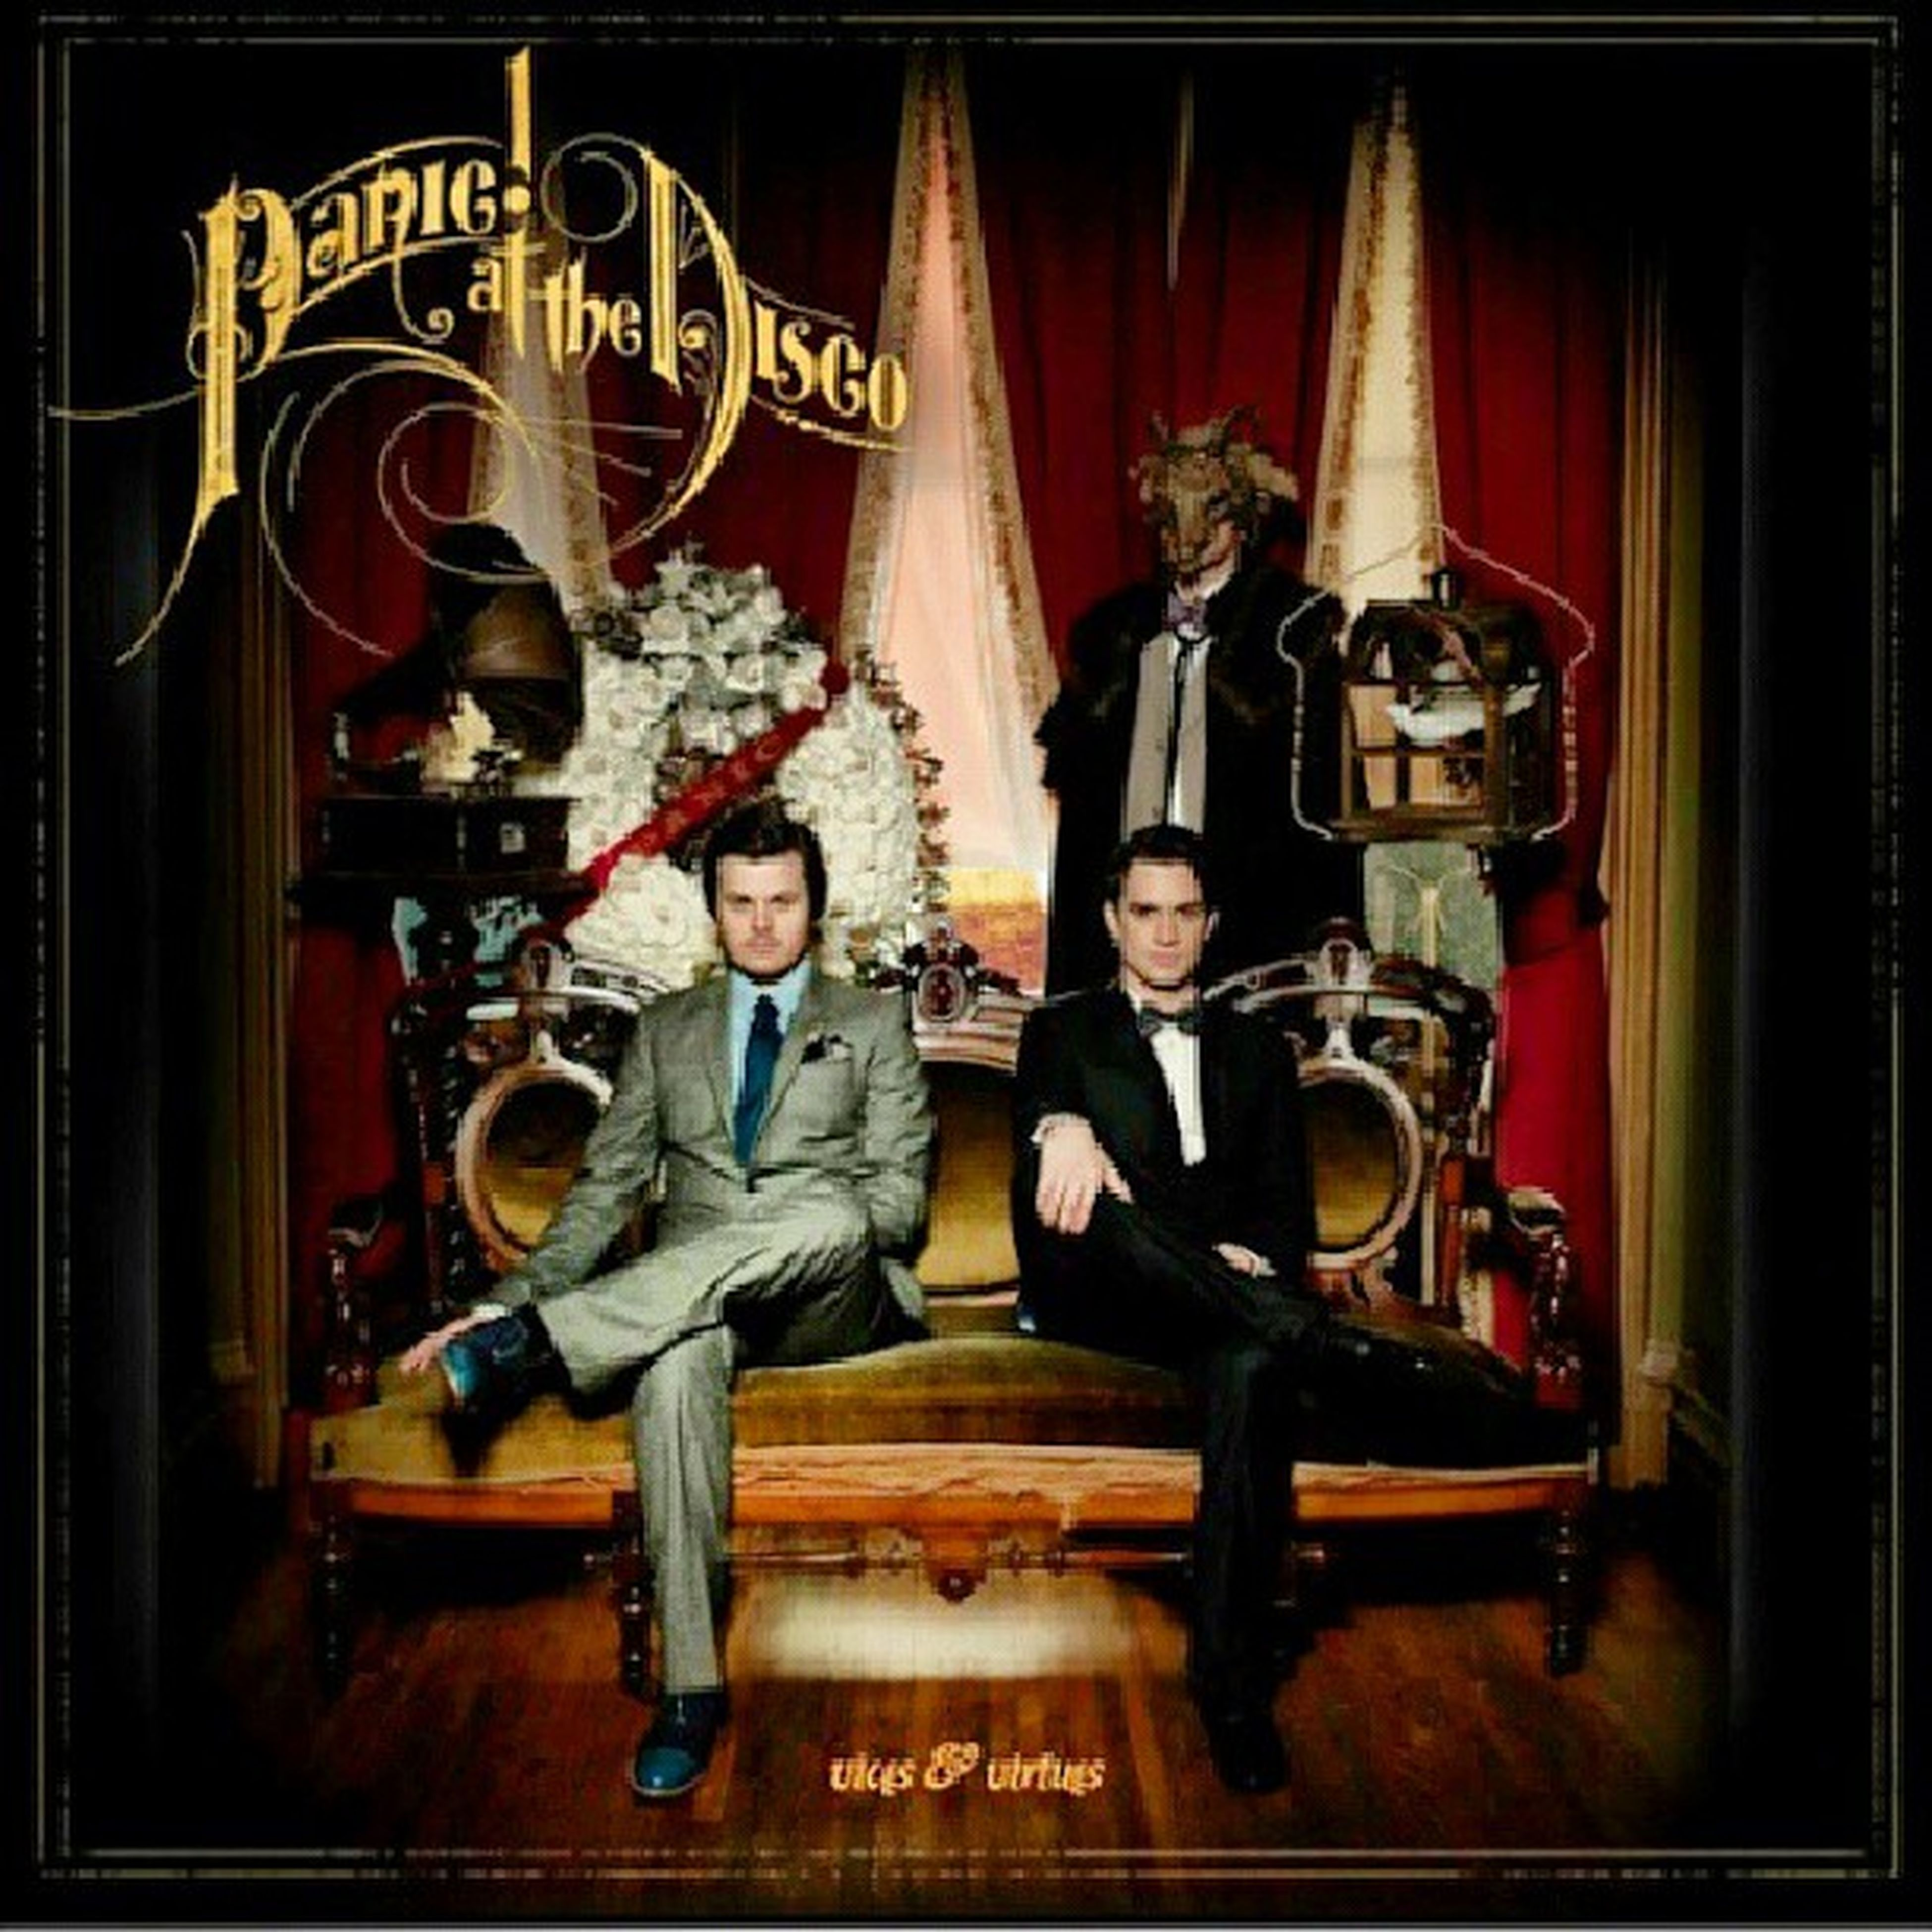 Panicatthedisco  Vicesevirtues